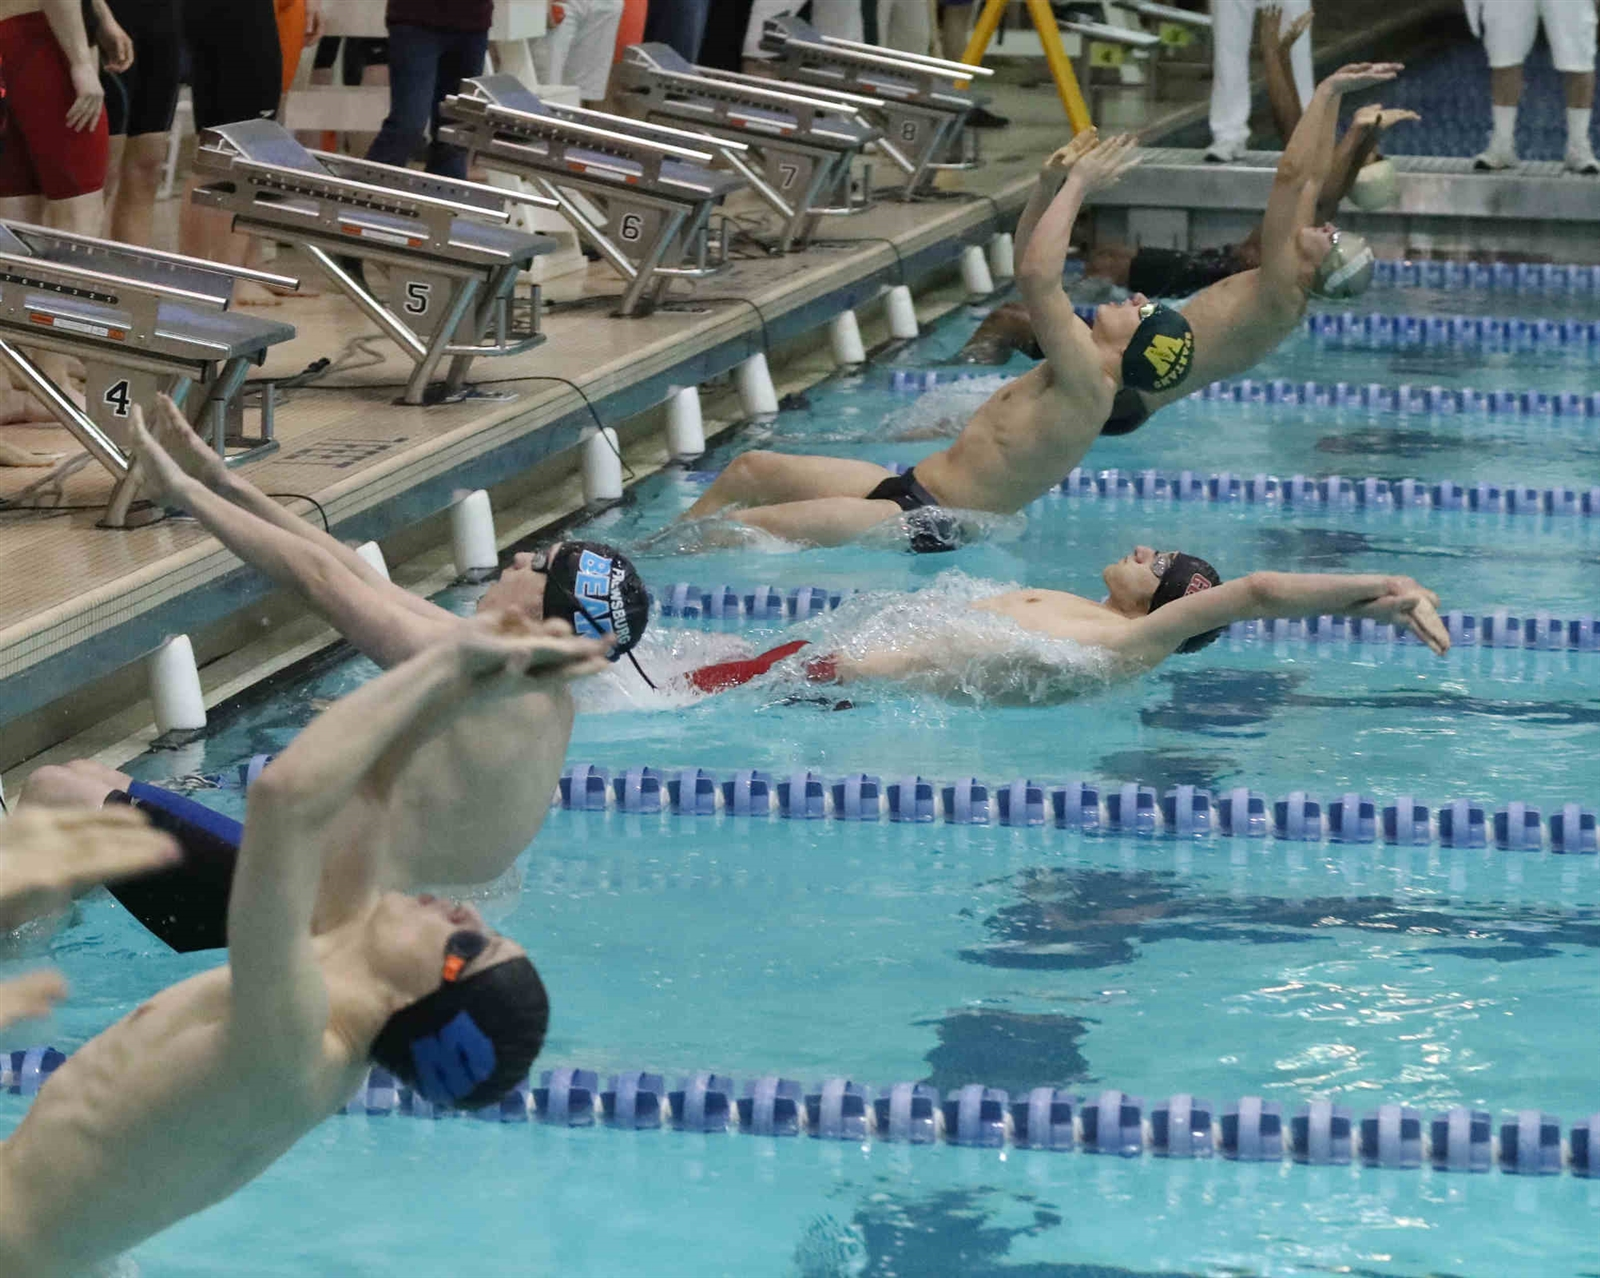 The start of the Boys 200 Yard Medley Heat 1 in the Section VI boys swimming championships at University of Buffalo Alumni Arena Natatorium.